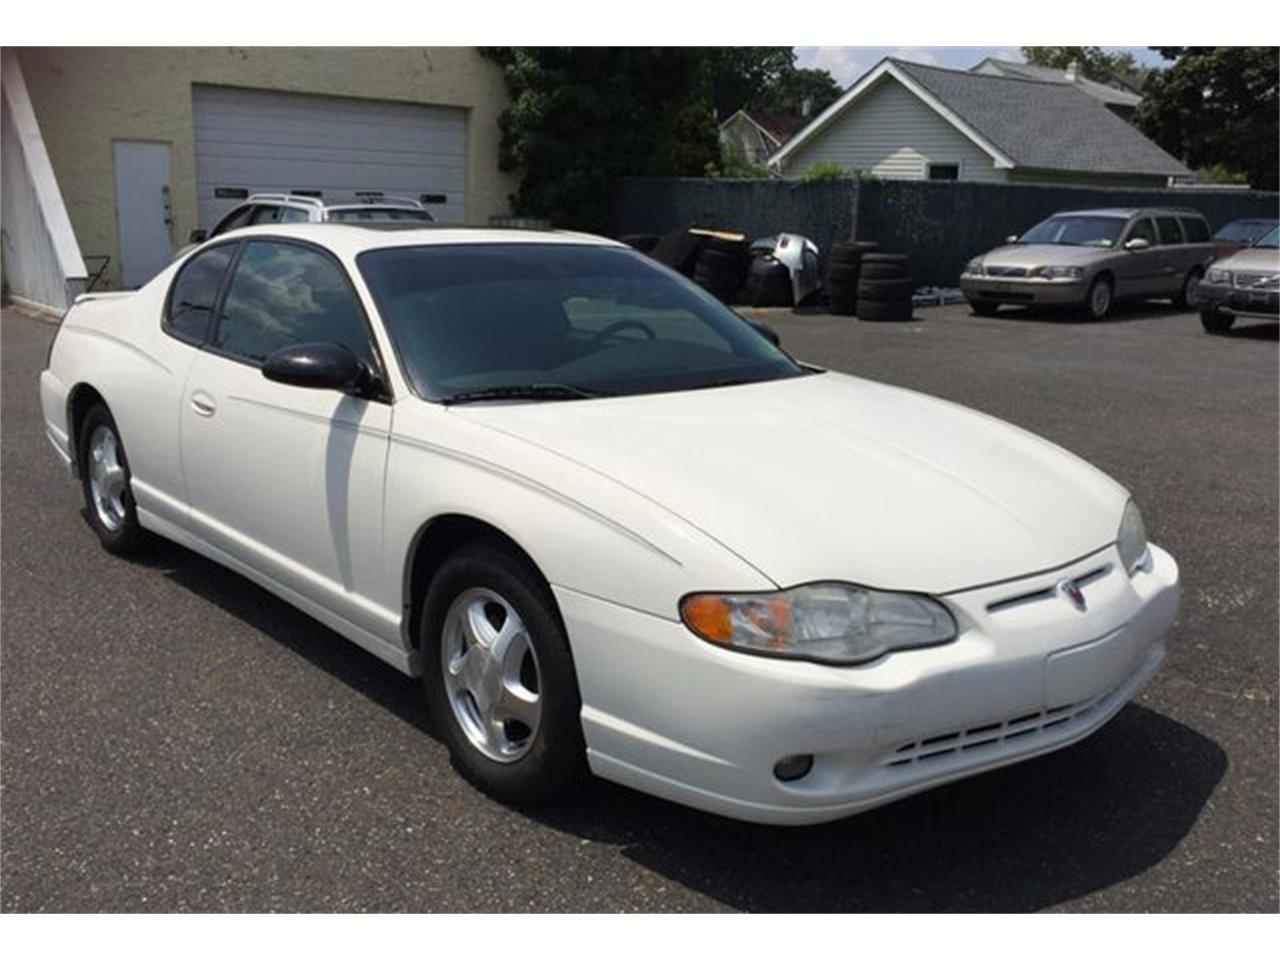 2005 Chevrolet Monte Carlo for sale in Woodbury, NJ – photo 12